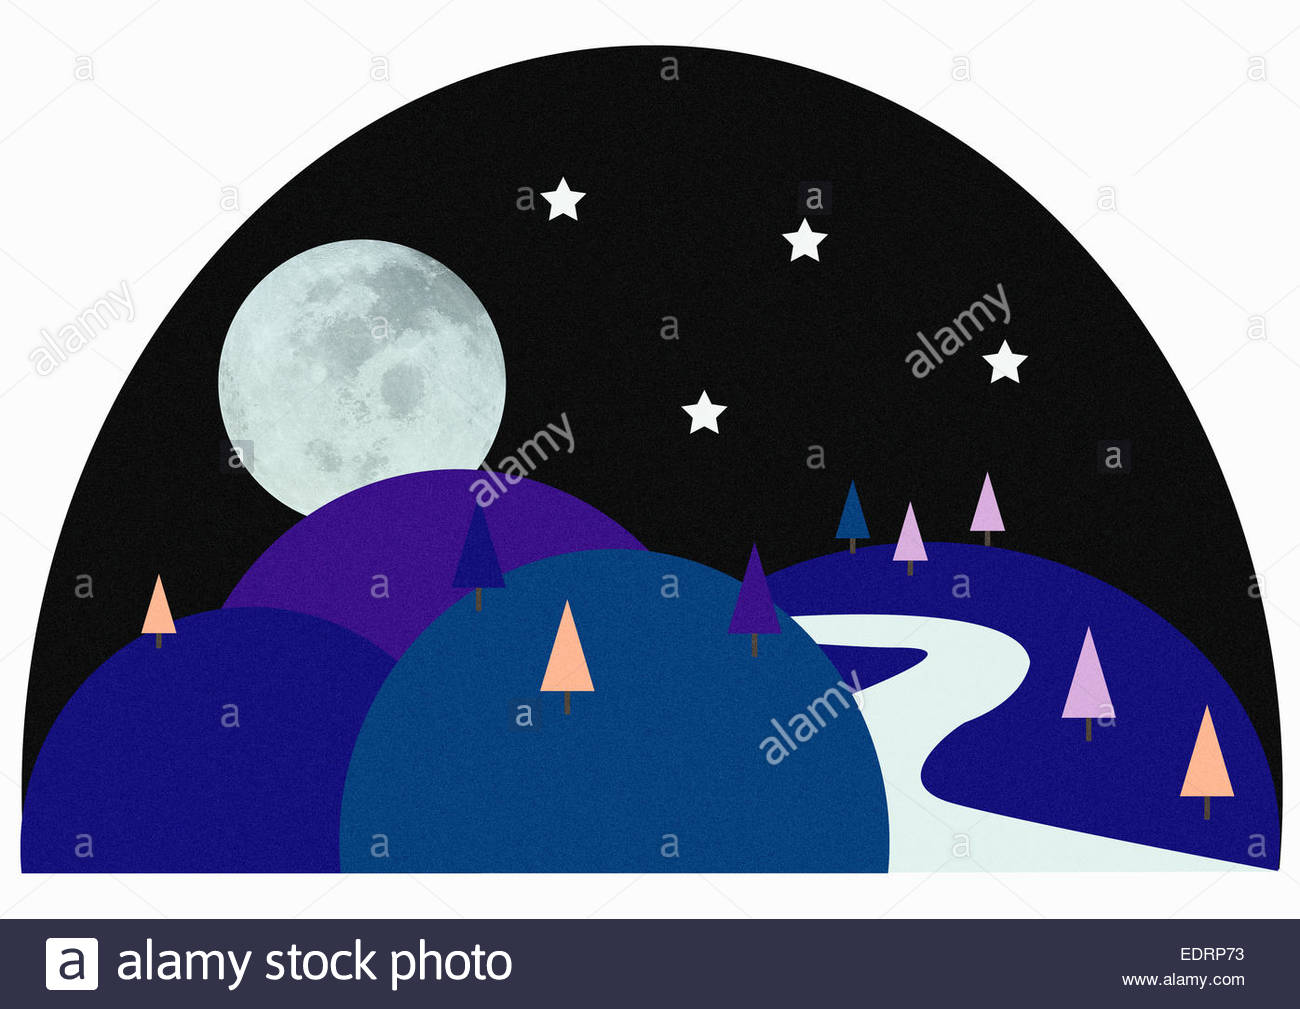 Winding path in rolling landscape at night with full moon - Stock Image